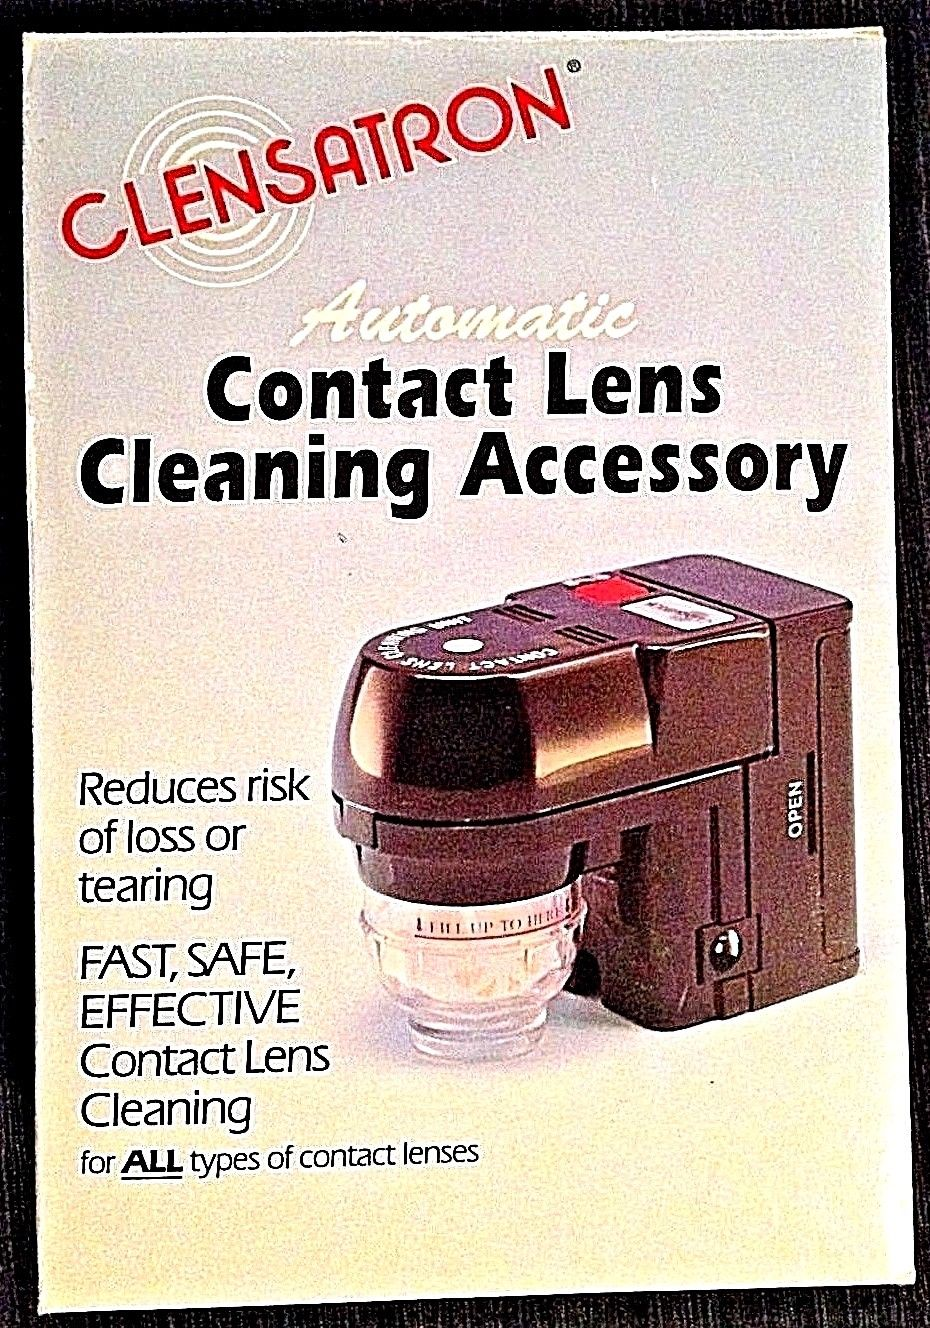 Clensatron 700cl Automatic Contact Lens Cleaning Machine